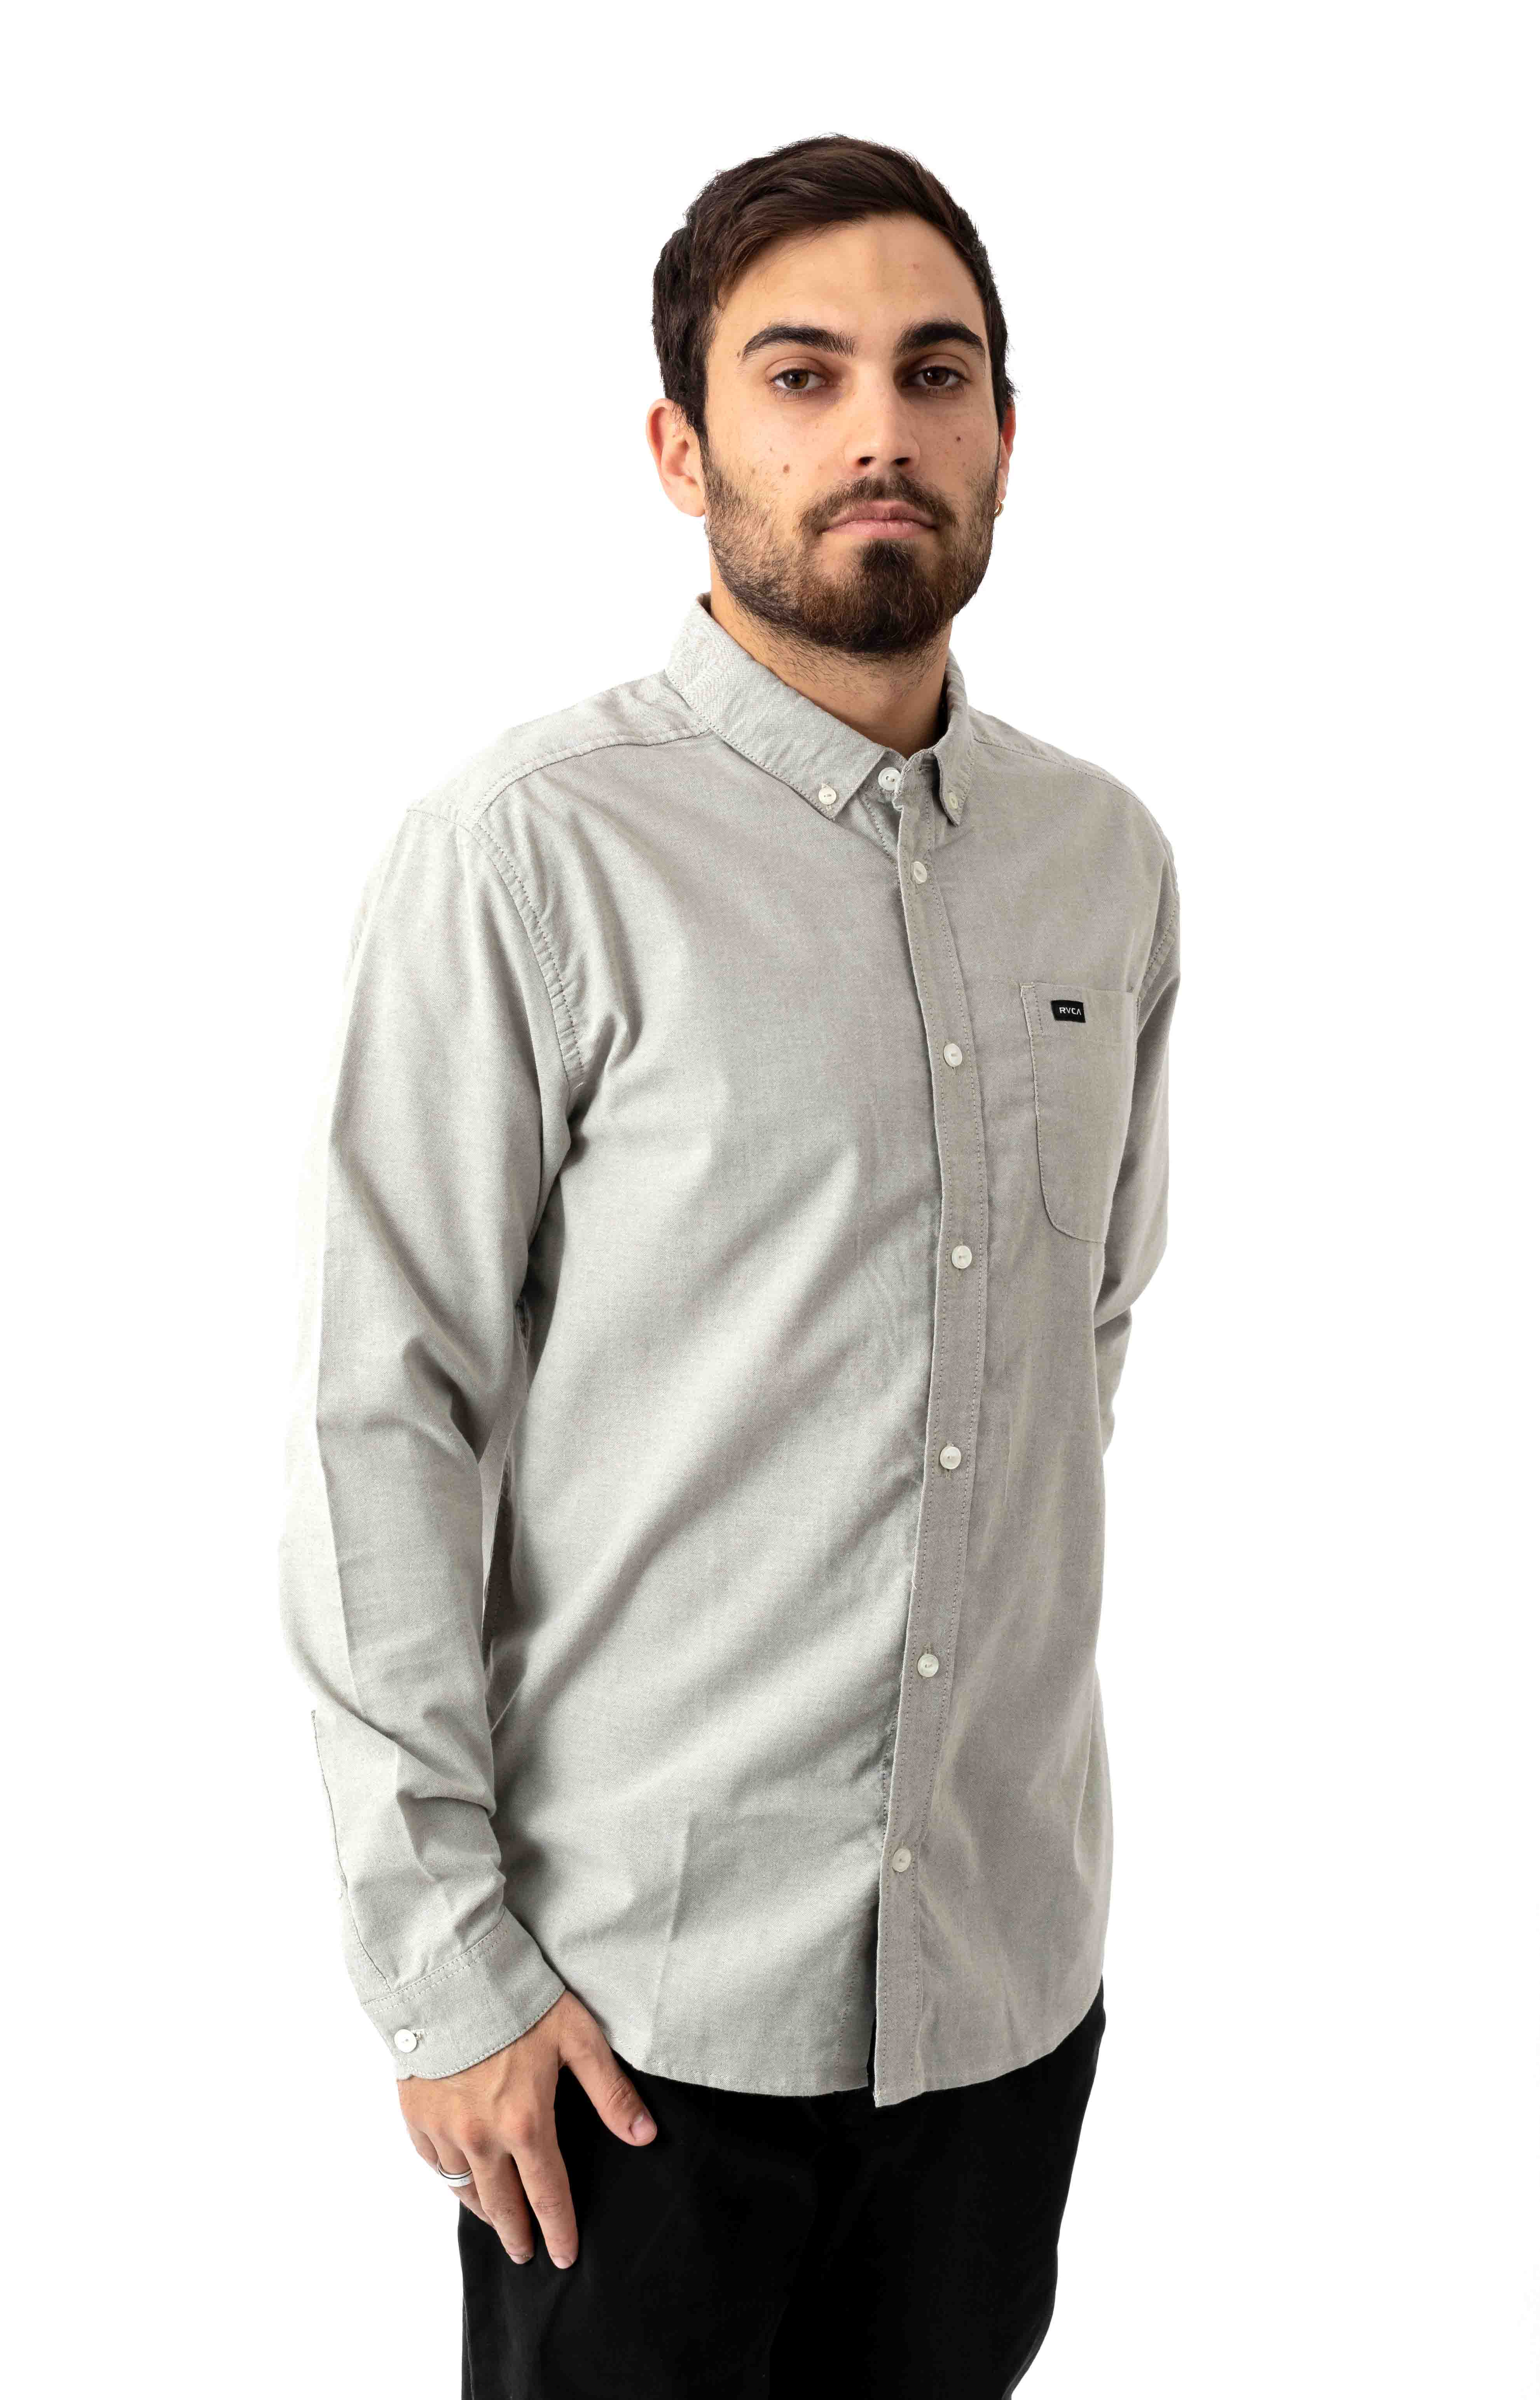 That'll Do Stretch Button-Up Shirt - Olive 2